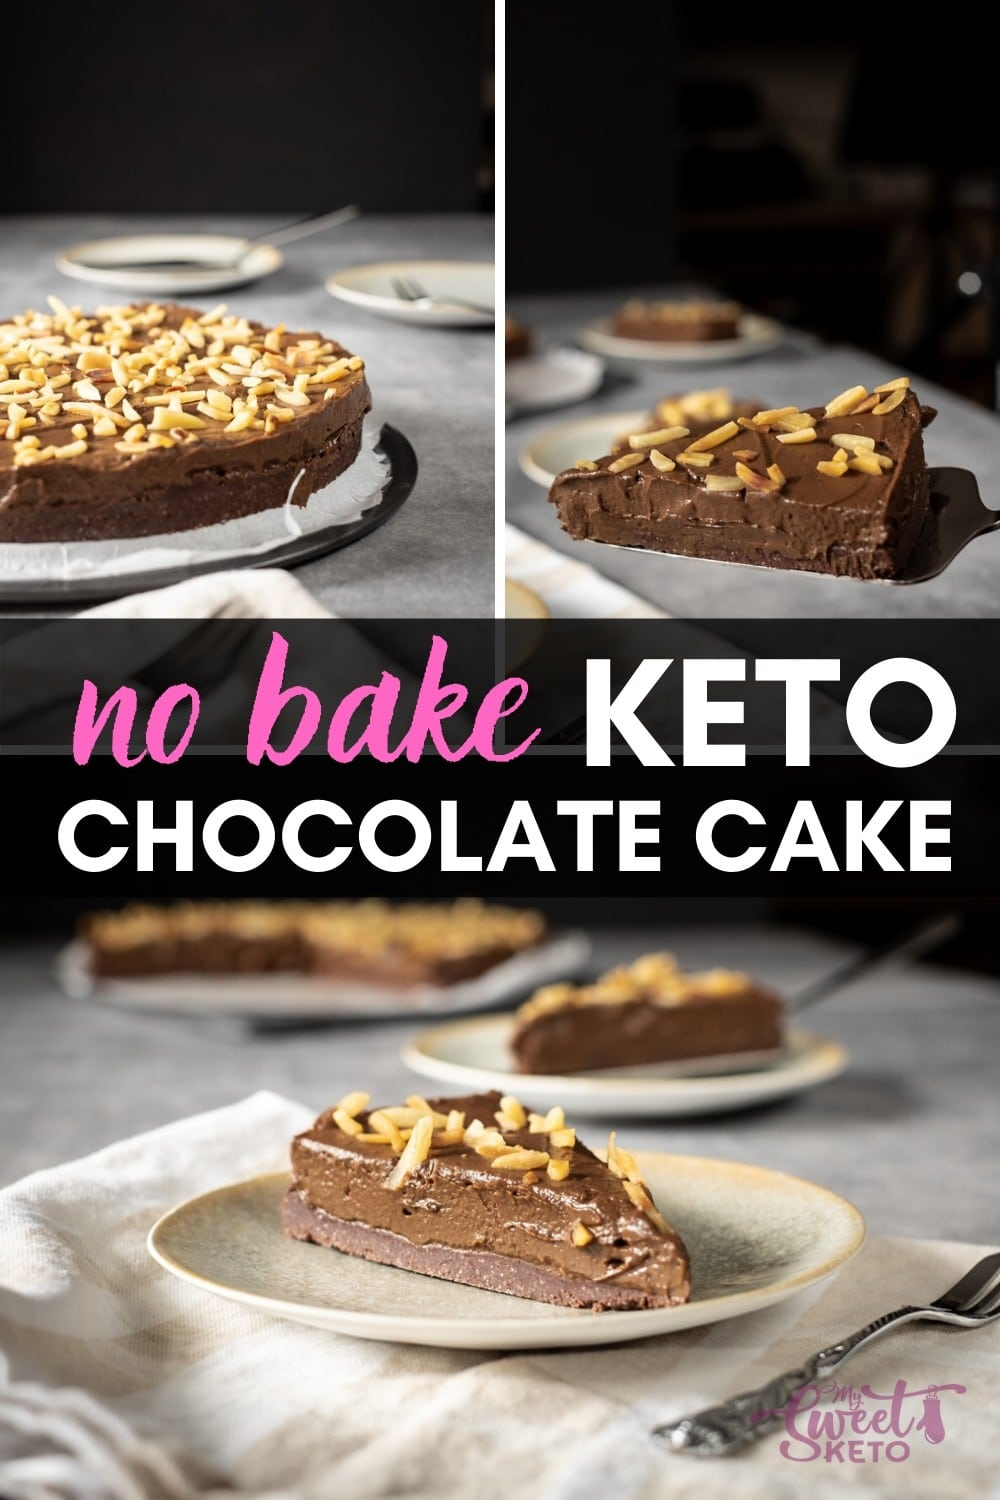 In the flood of keto chocolate cake recipes, No Bake Keto Chocolate Cake is easy to make. Besides, it can be made entirely vegan friendly! #keto #cake #ketofam #ketocake #ketochocolatecake